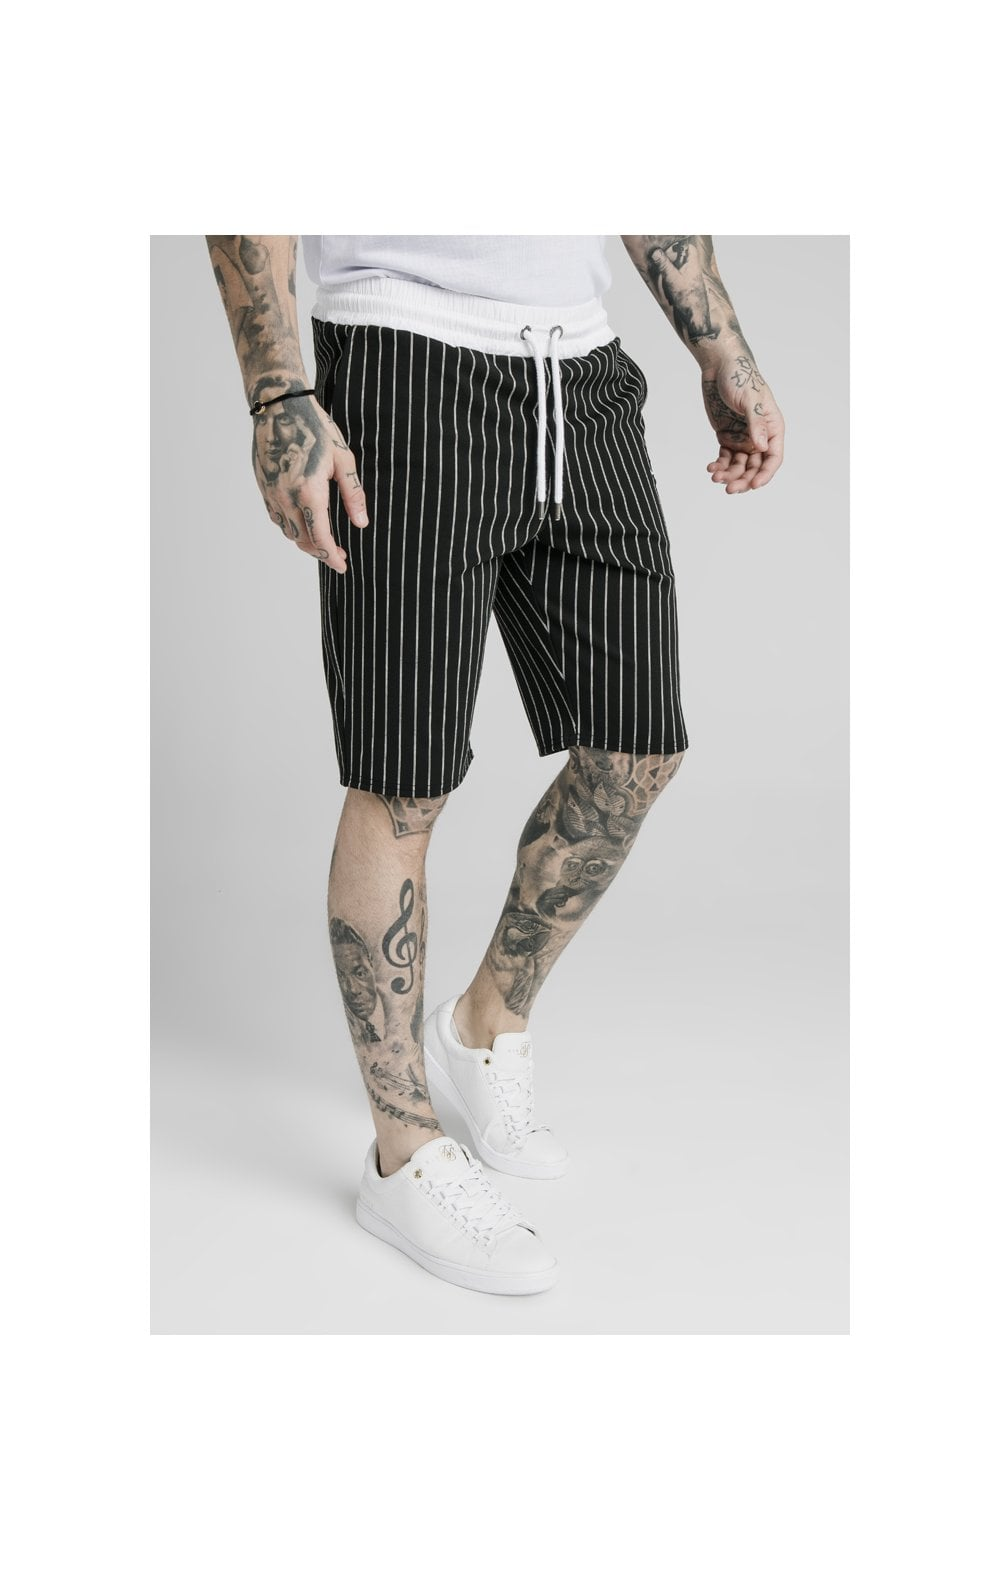 SikSilk Chino Elasticated Long Shorts - Black & White (1)